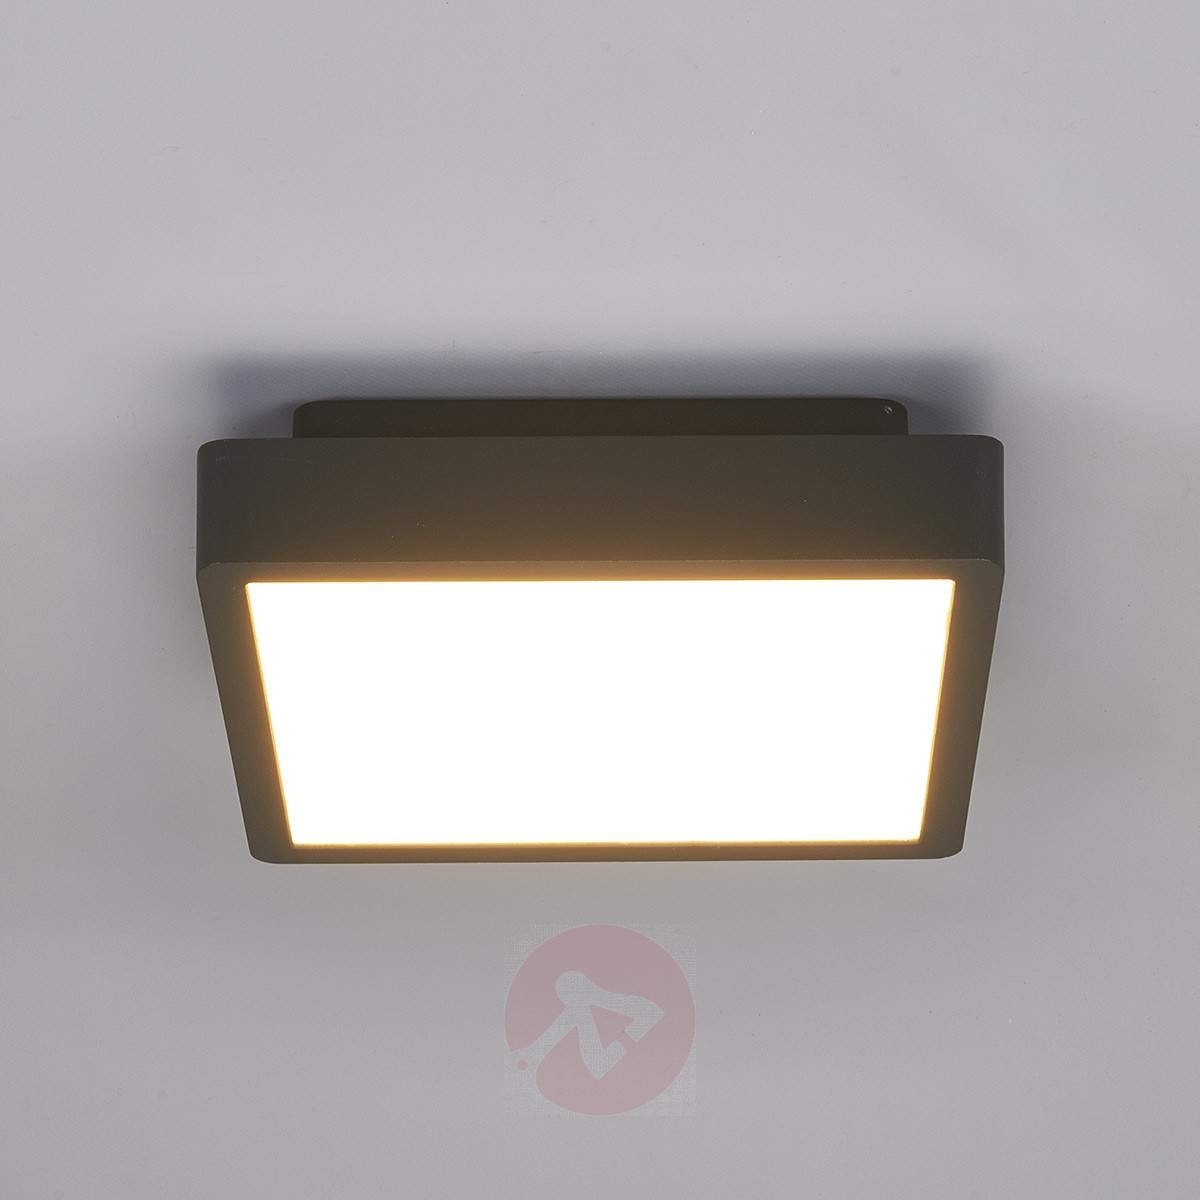 Inspiration about Rectangular Led Outdoor Ceiling Light Talea | Lights.co.uk Intended For Outdoor Ceiling Lights (#3 of 15)